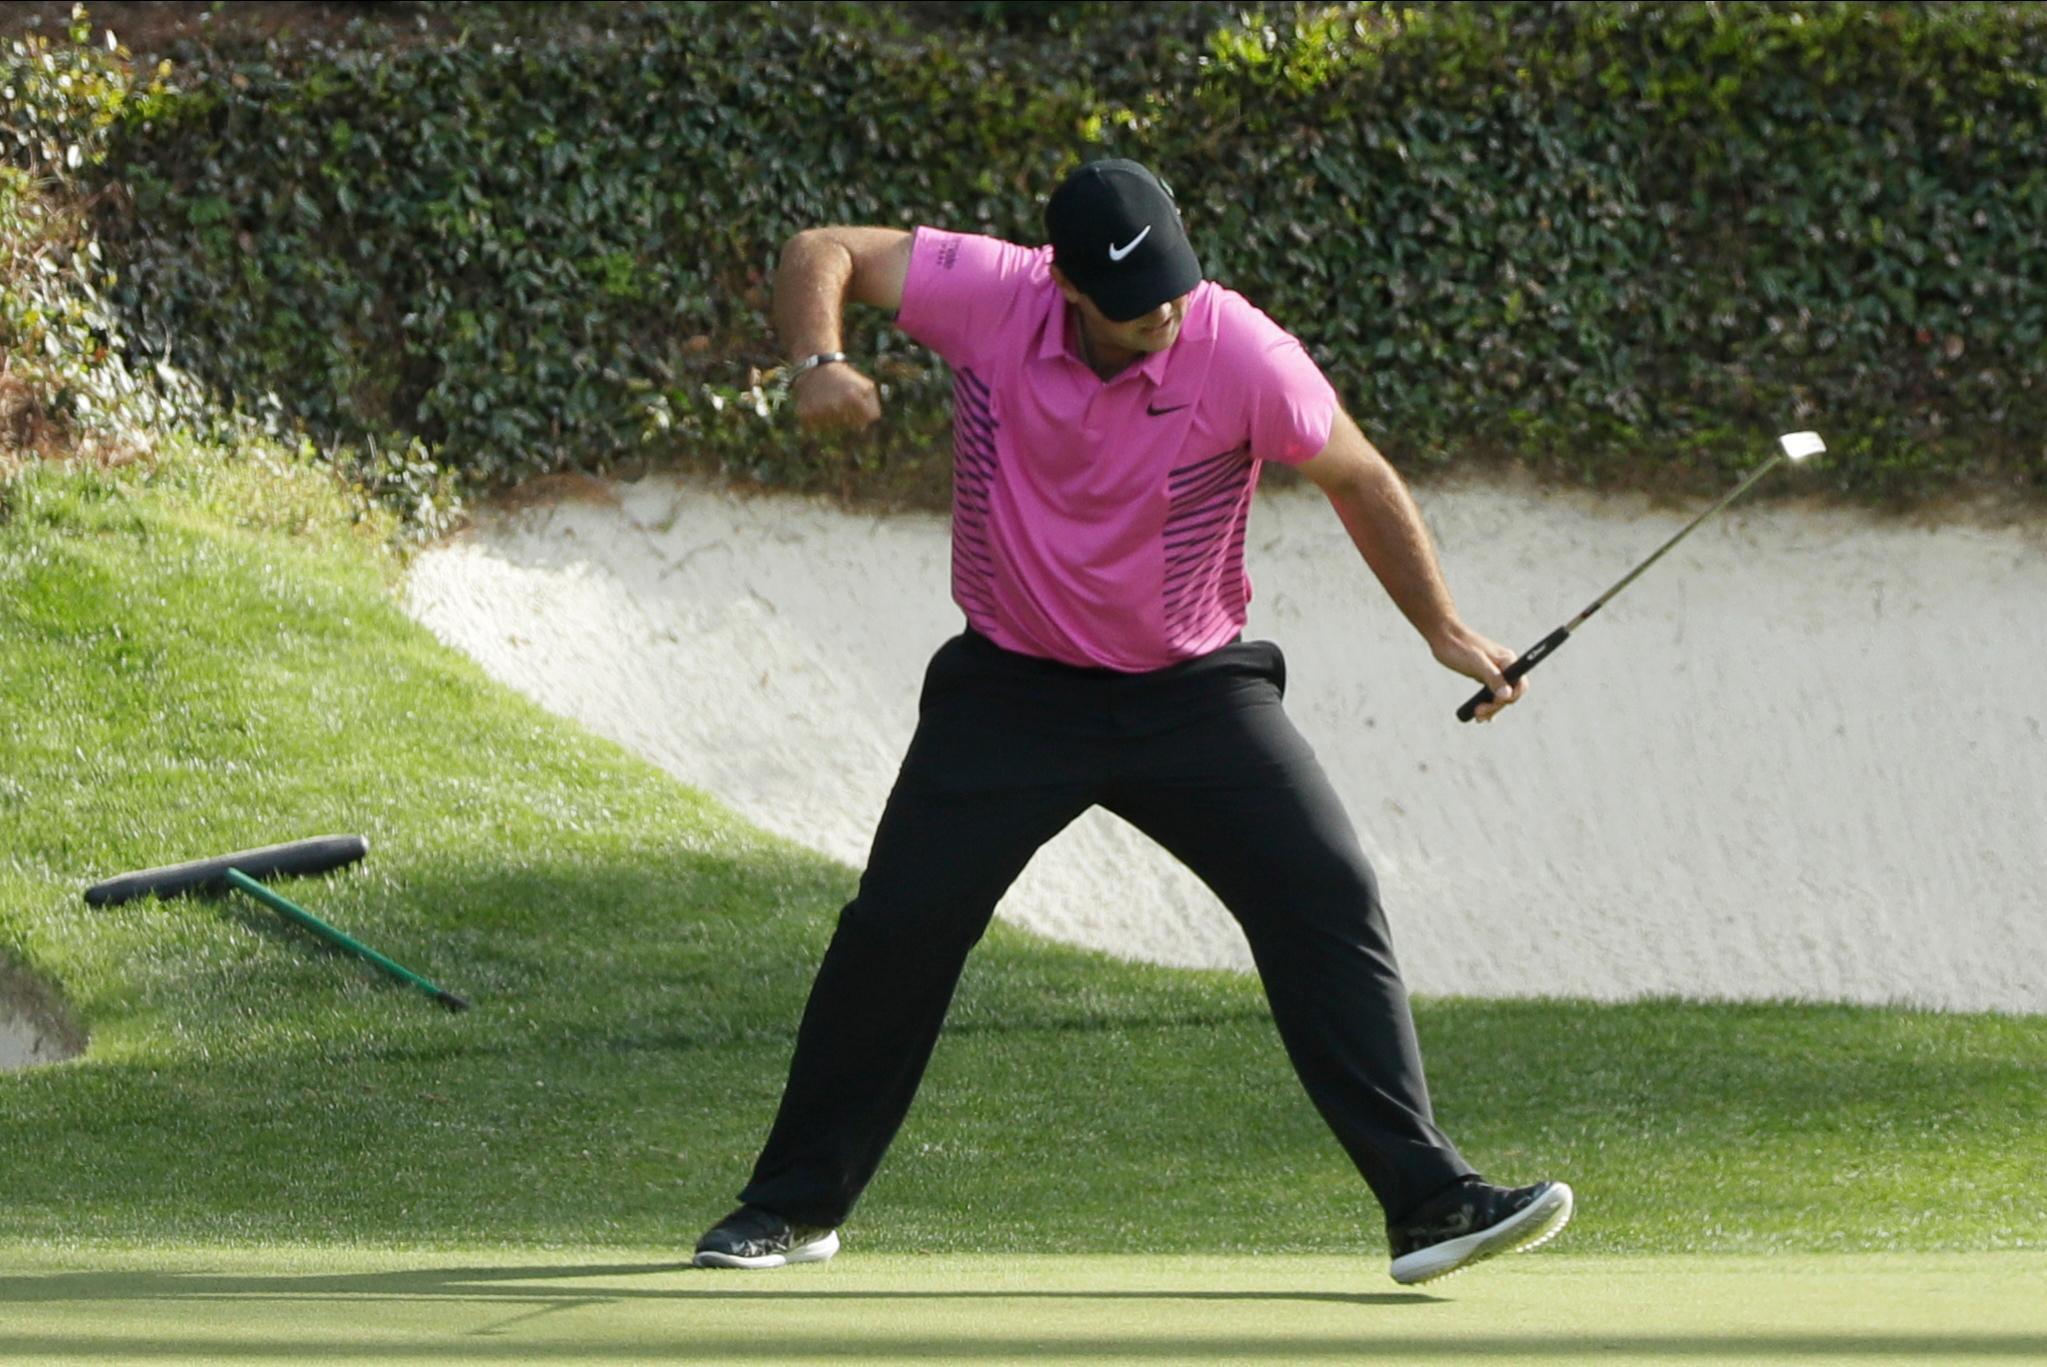 Patrick Reed saw off a surging Rickie Fowler to win the green jacket